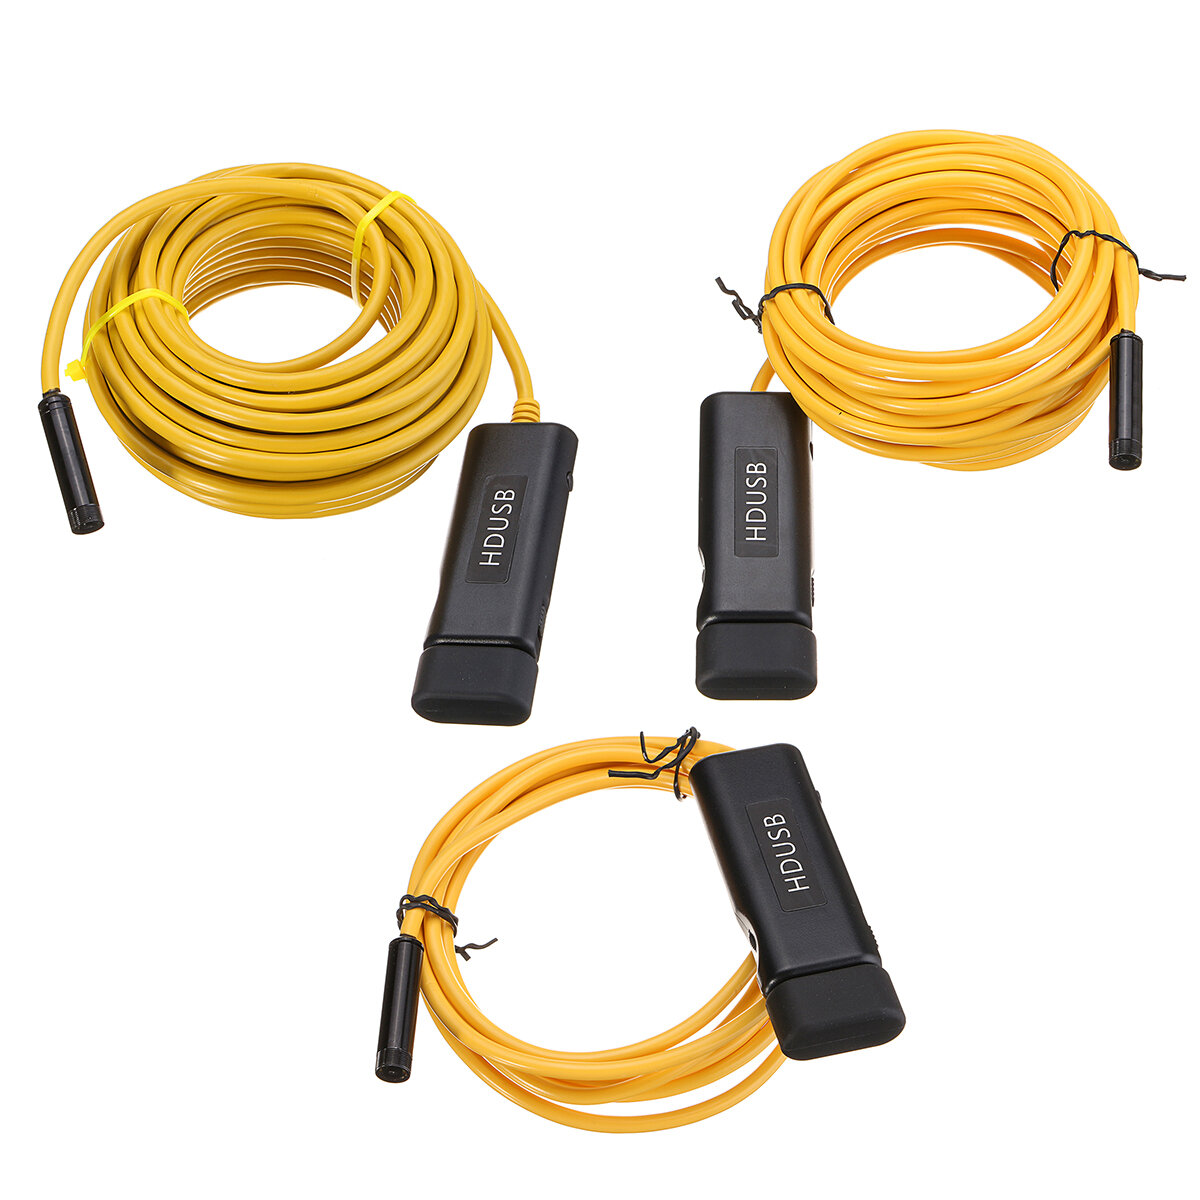 WiFi Borescope Inspection Camera 2.0 Megapixels HD Snake Camera for Android and IOS Smartphone